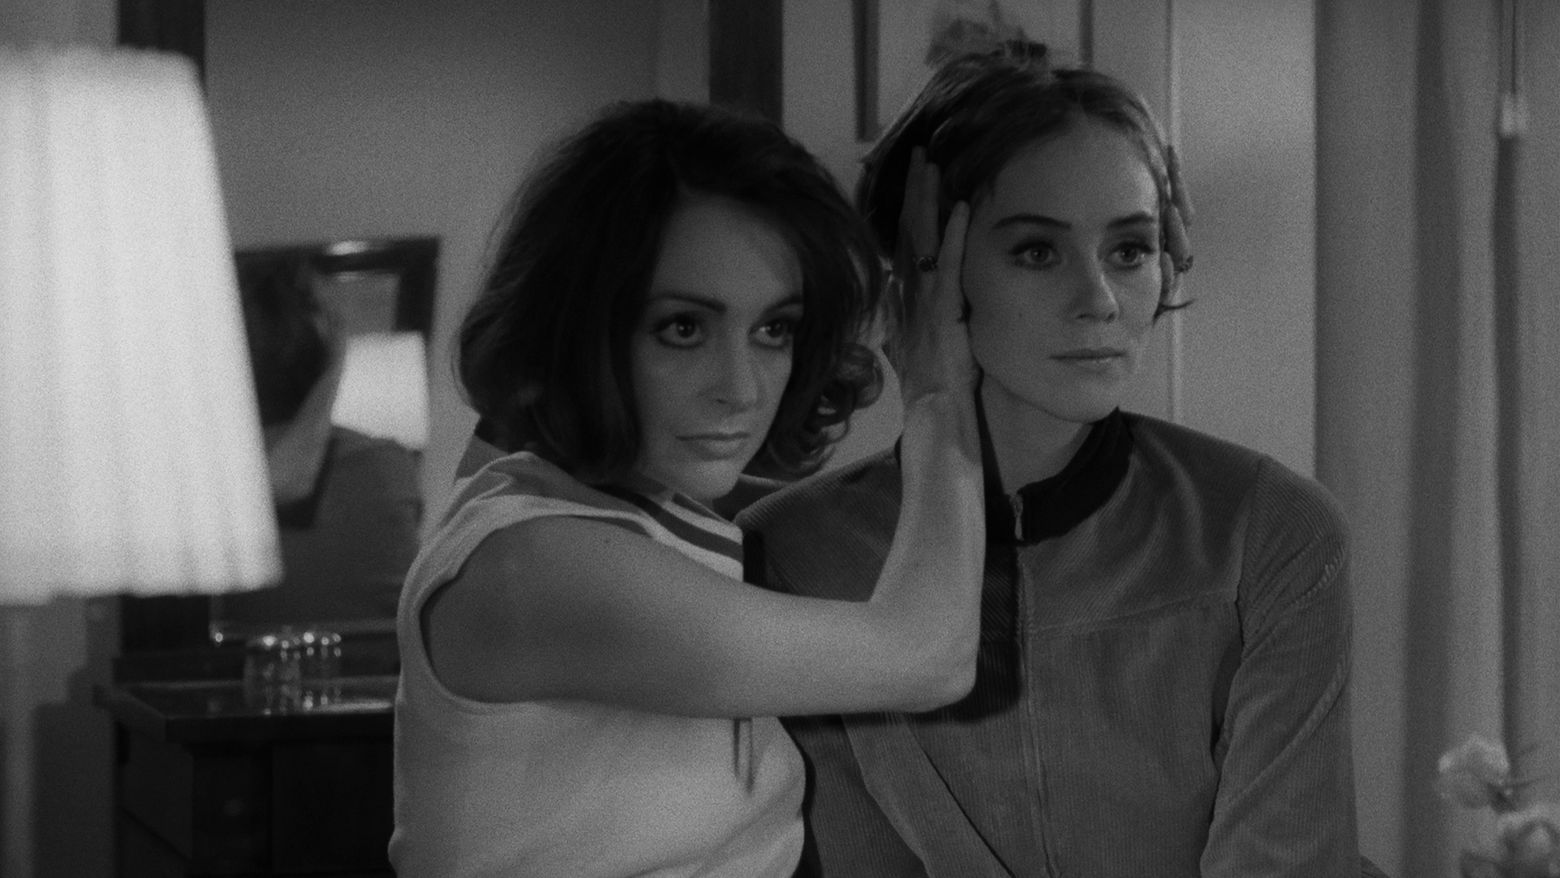 Still from the film Duet for Cannibals (1969) showing a woman holding another woman's head as they both look forward